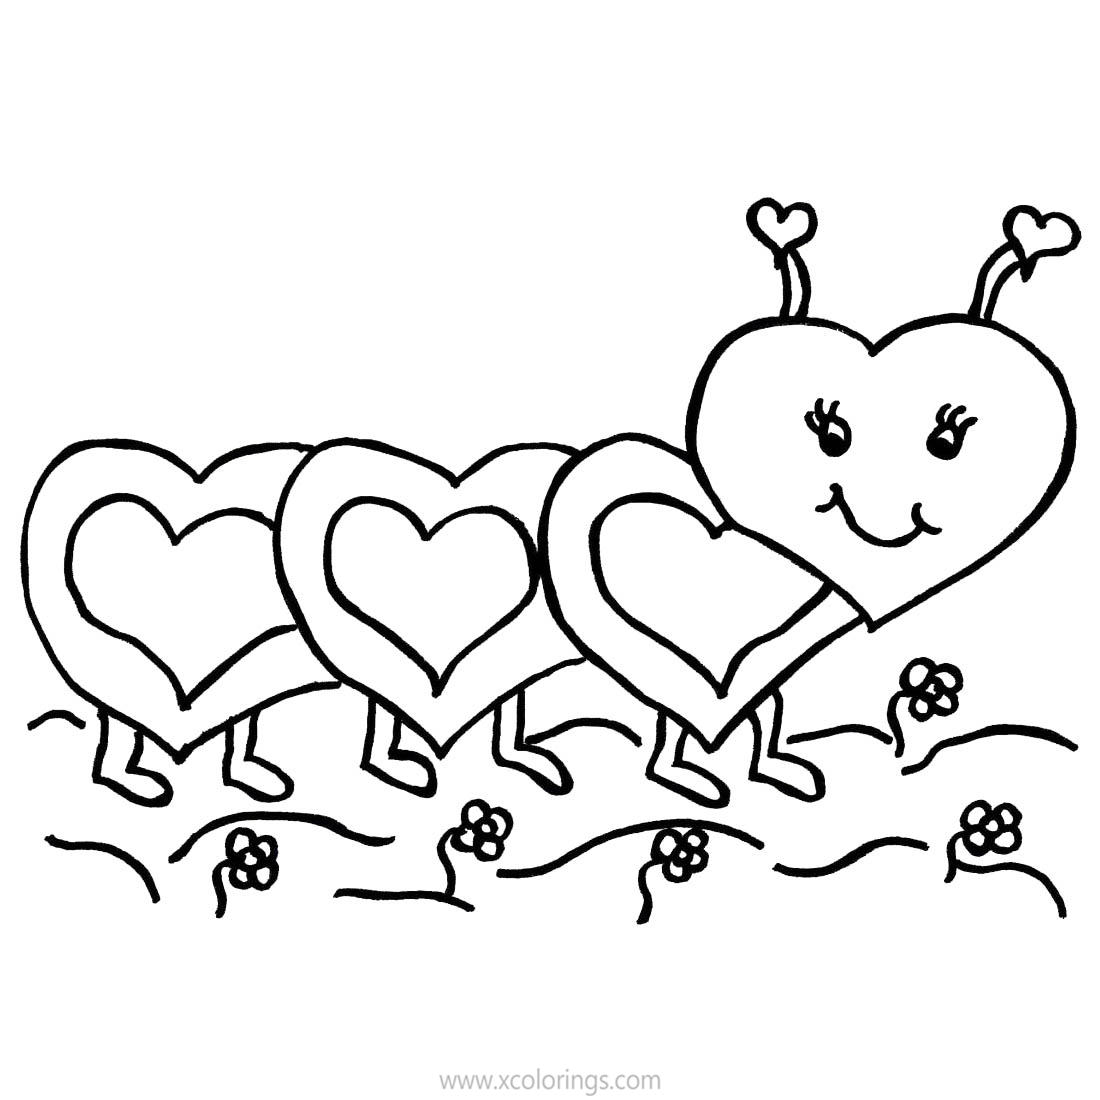 Valentines Day Caterpillar Coloring Pages Xcolorings Com